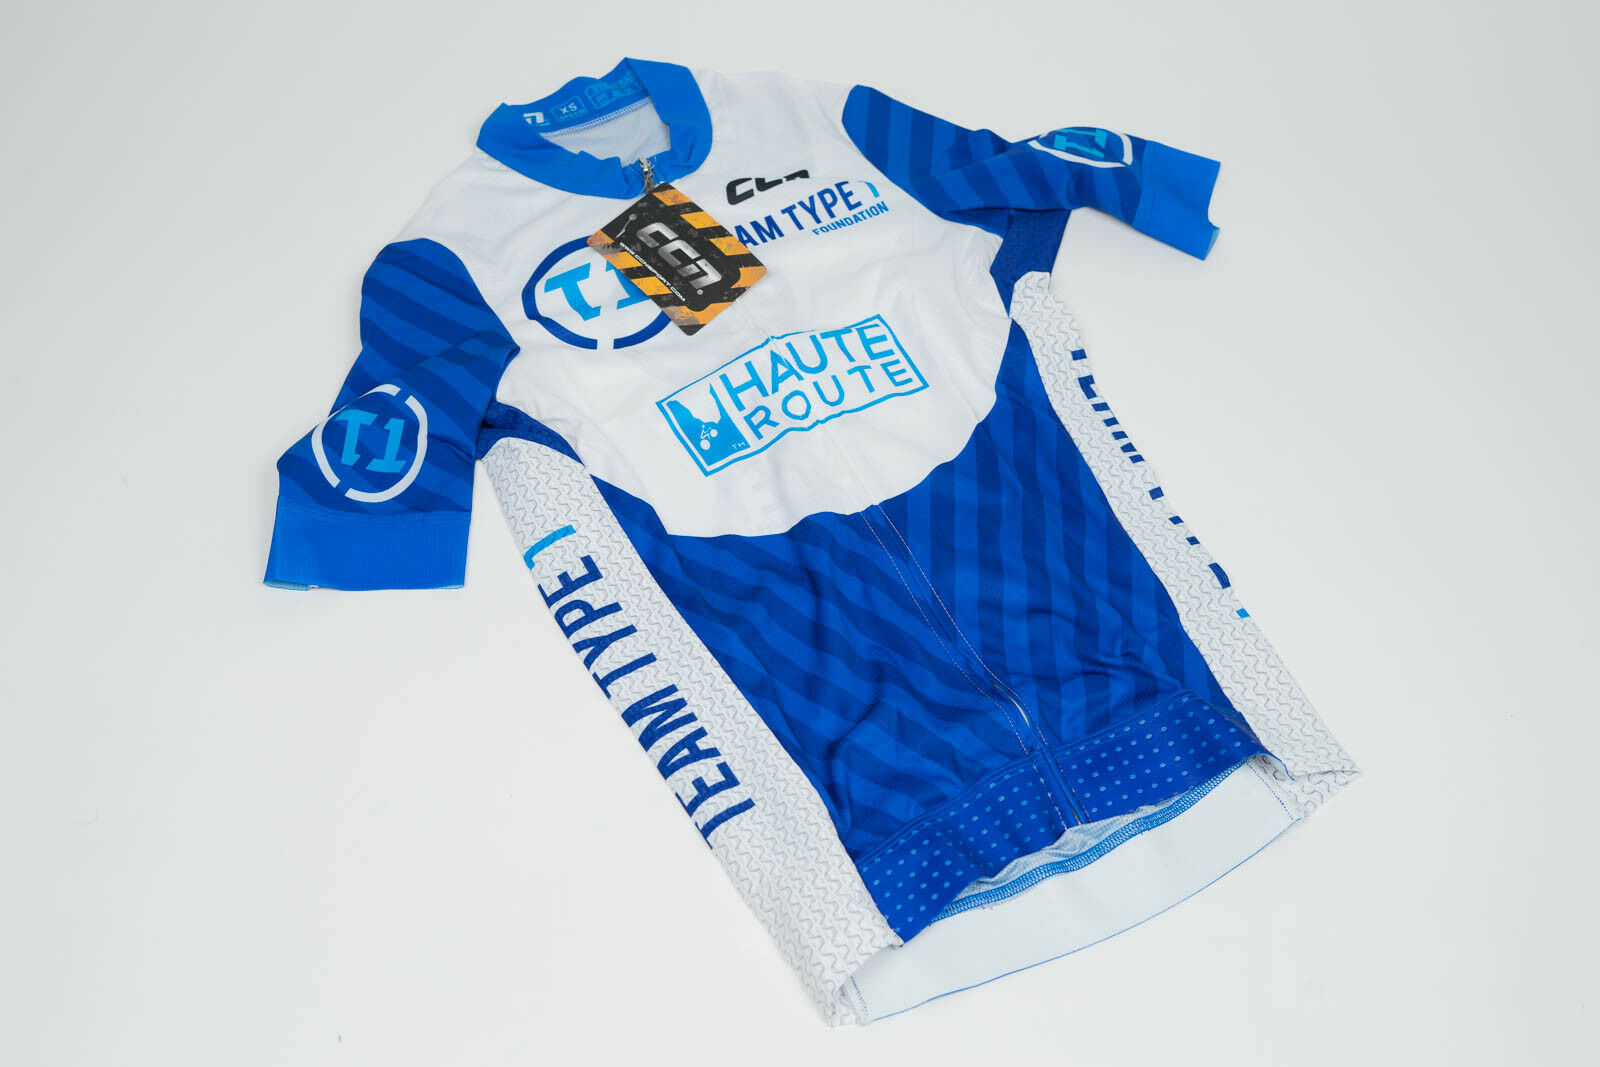 nuovo 2017 Men's CCN TT1 Foundation SS Cycling Speed Jersey, blu, Dimensione XS